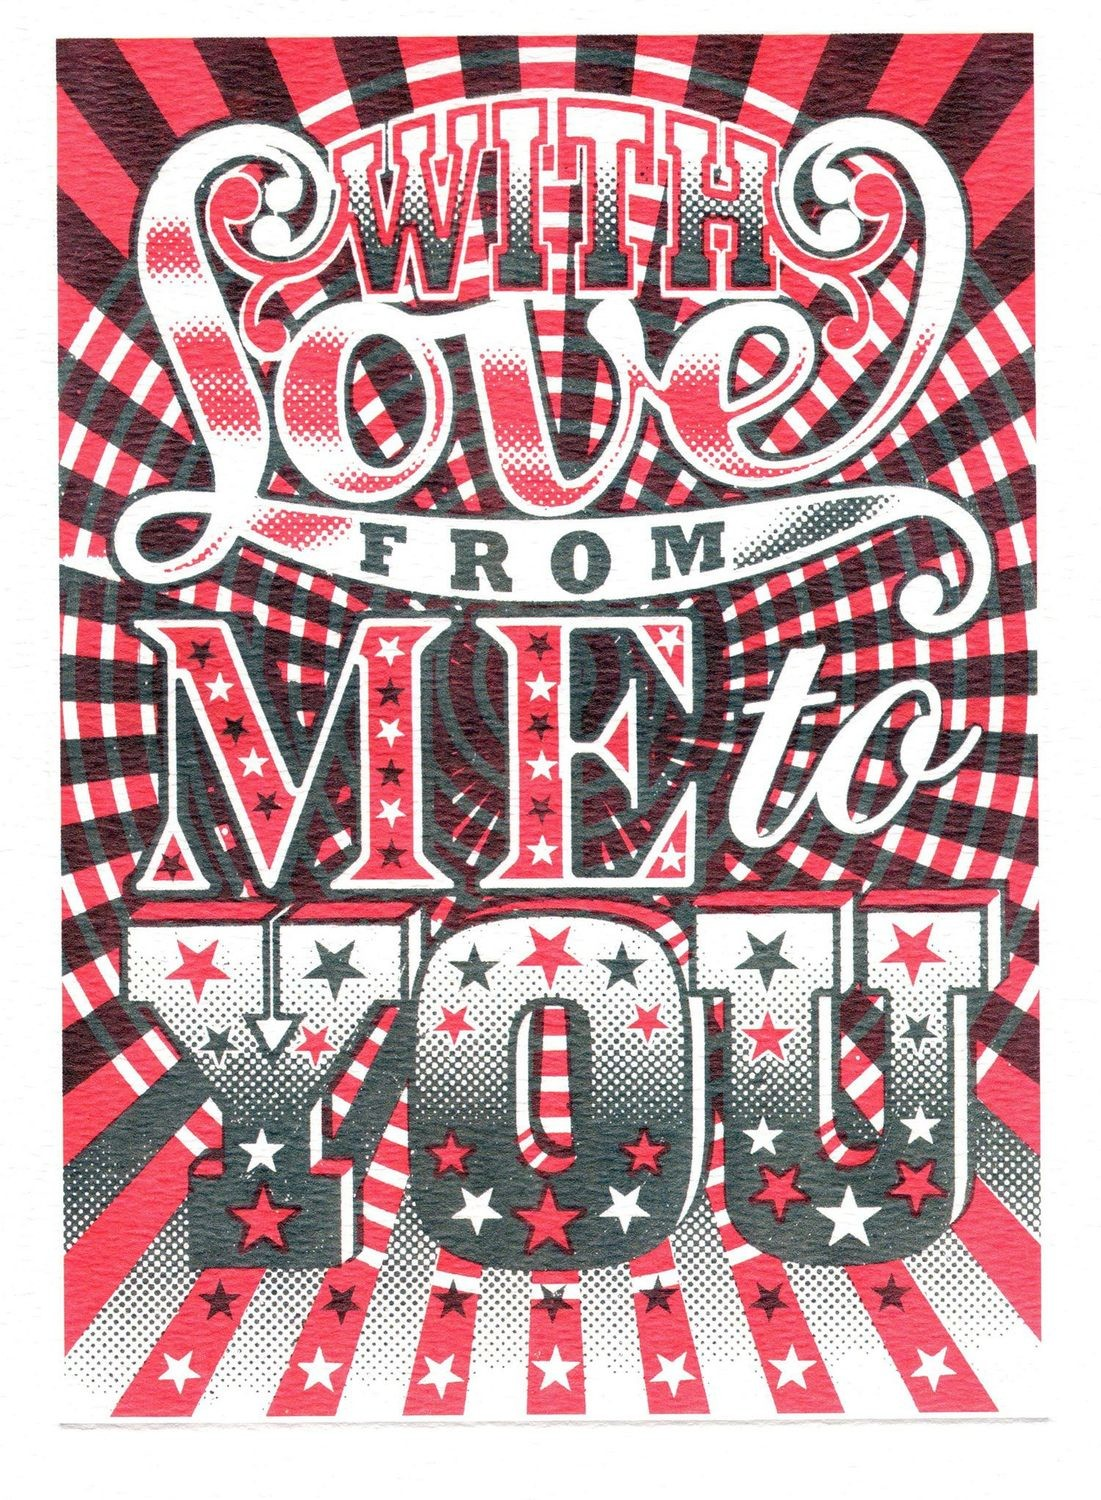 With love- Printmakers card